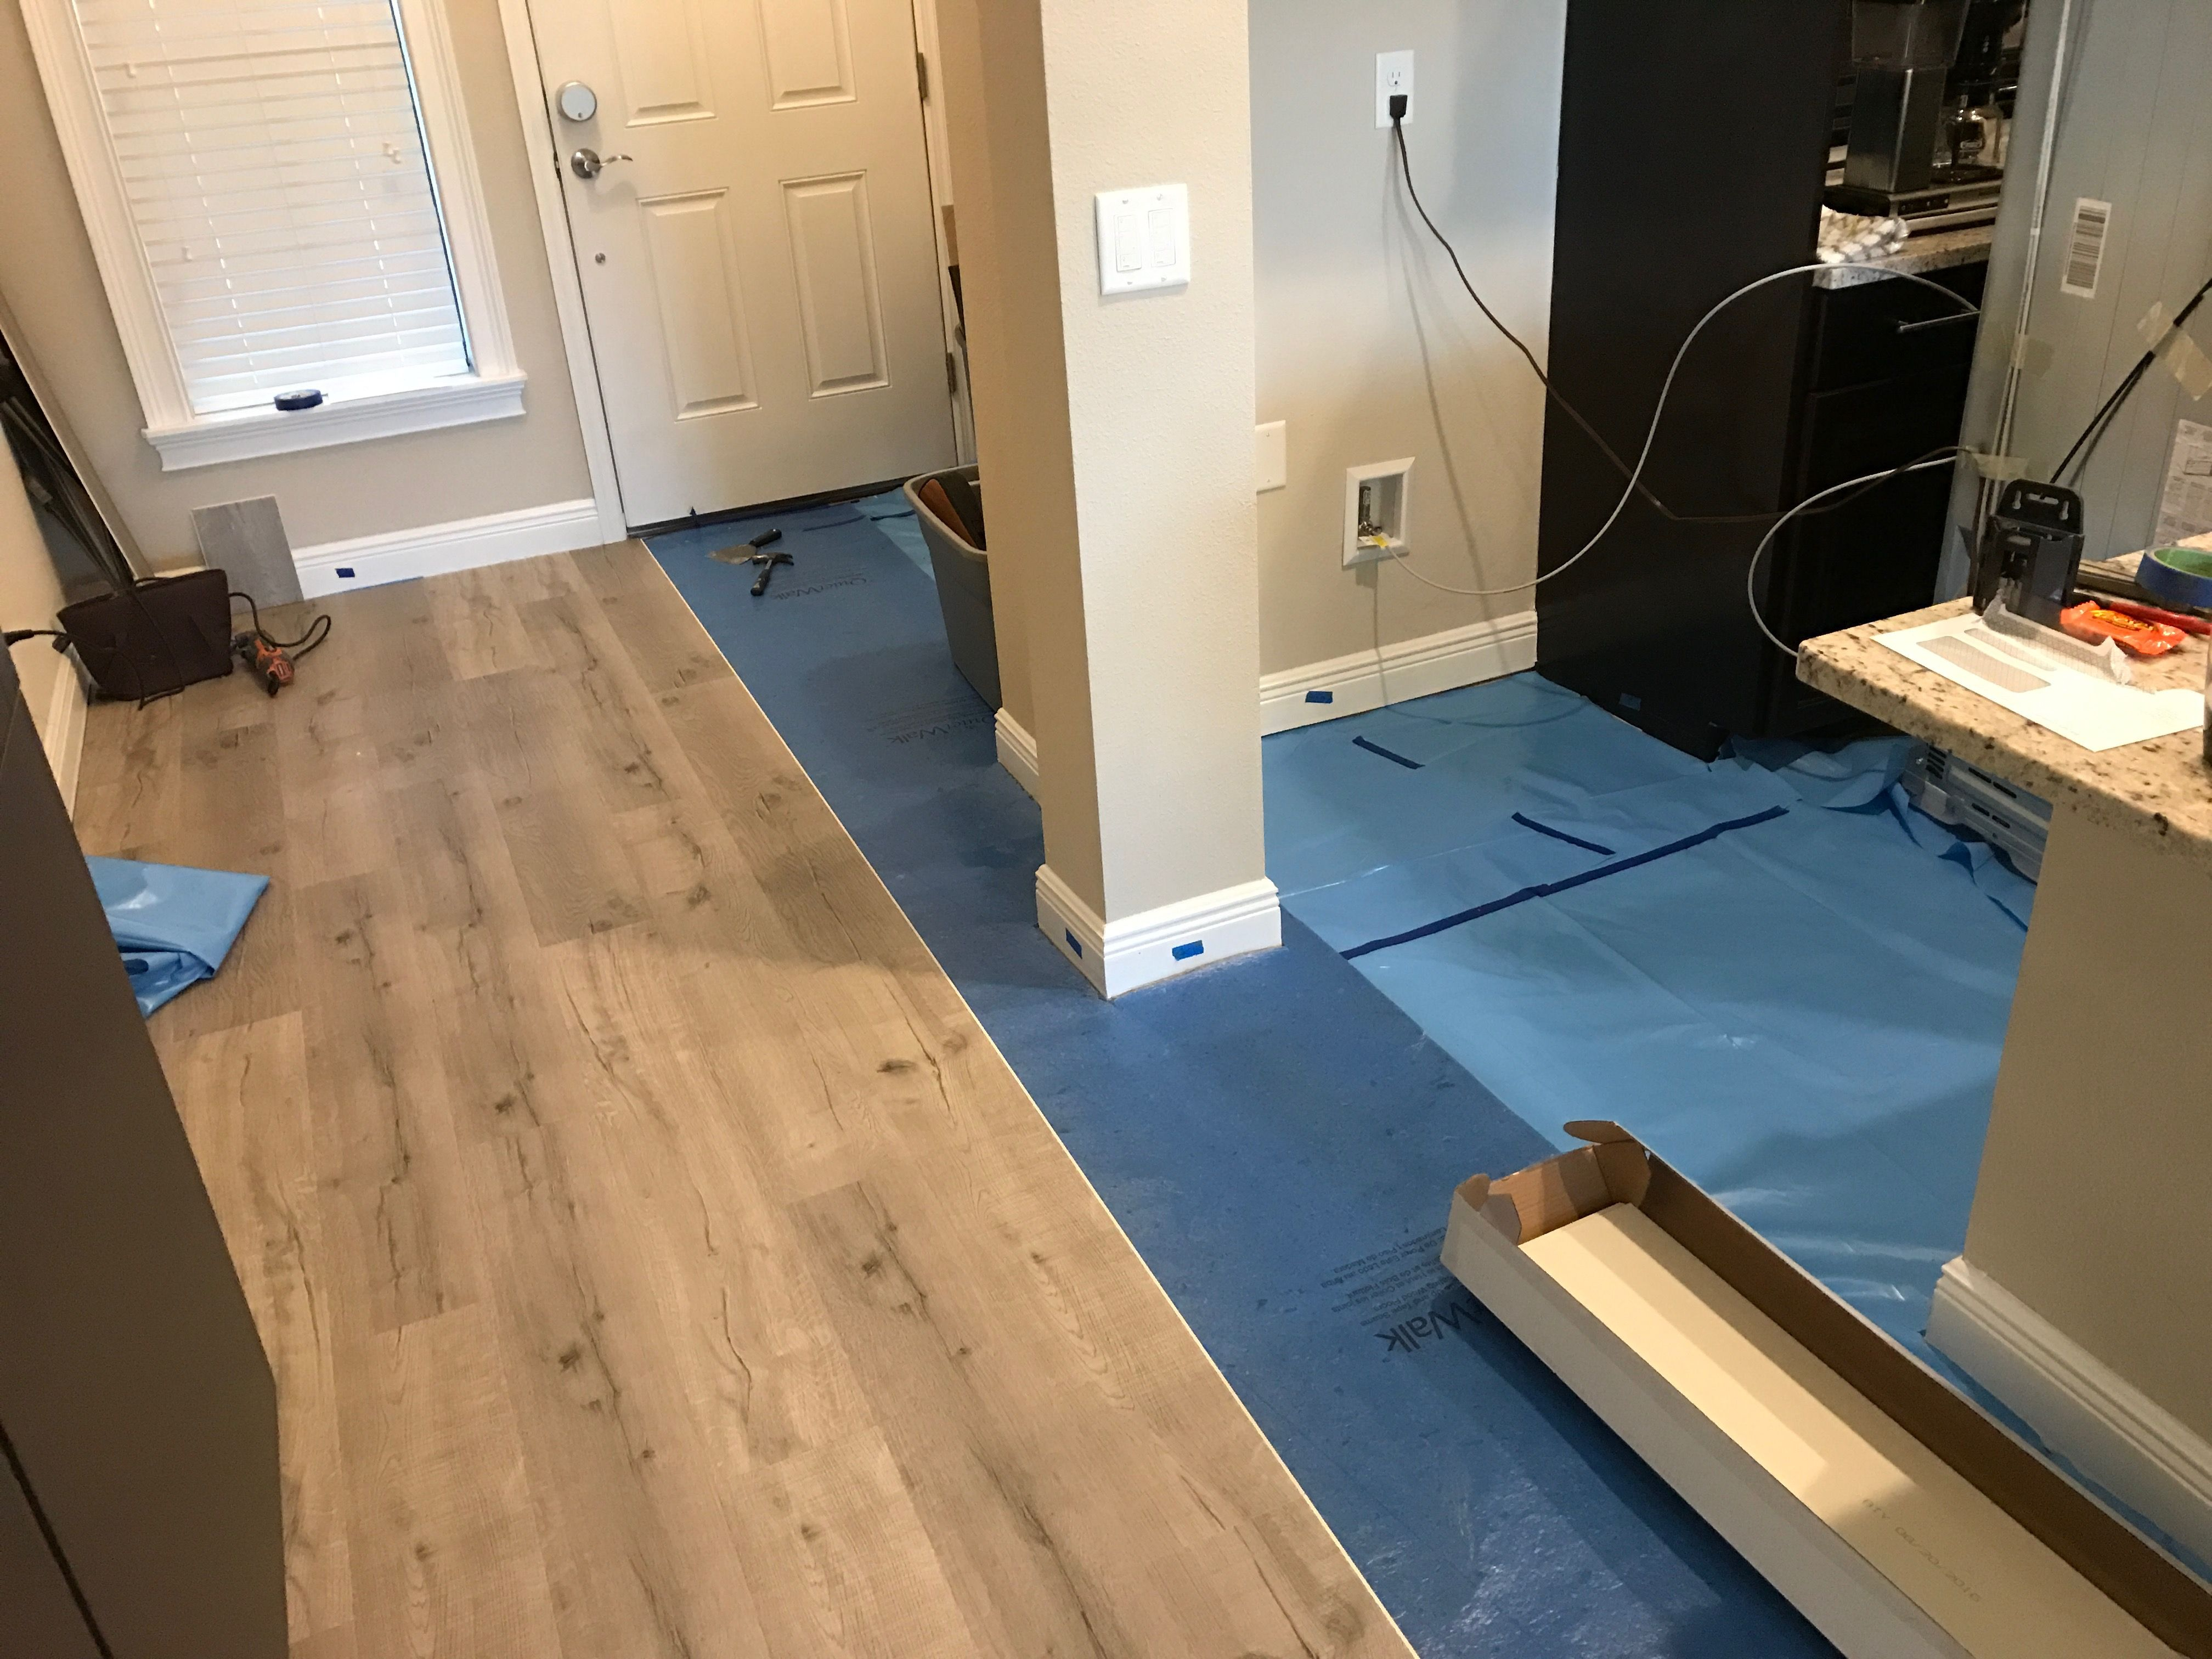 Mm EVP Vinyl Plank Flooring Over Existing Ceramic Tile With - Moisture barrier for vinyl plank flooring